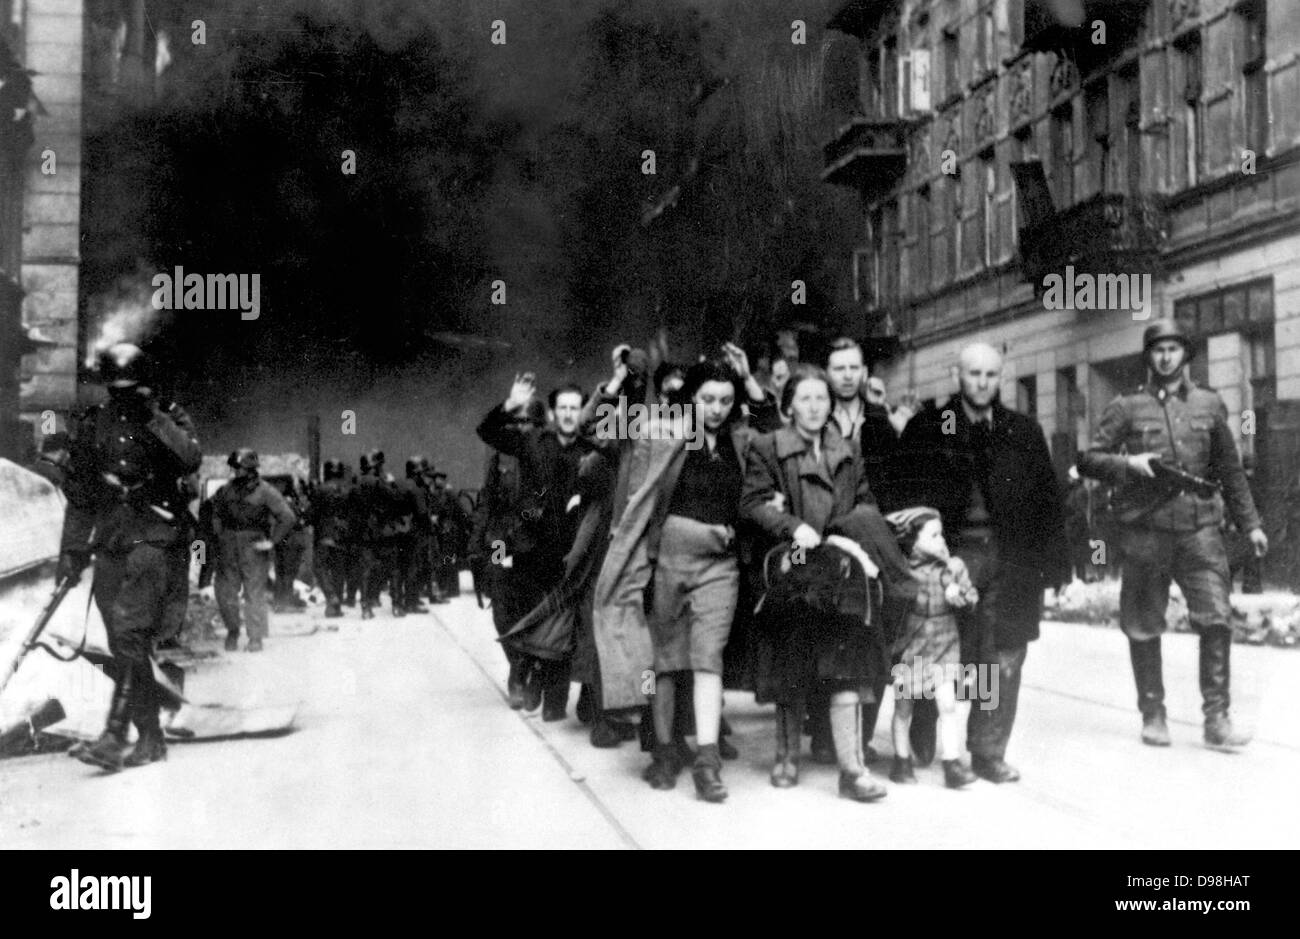 Jewish civilians captured during the destruction of the Warsaw Ghetto, Poland, 1943. - Stock Image